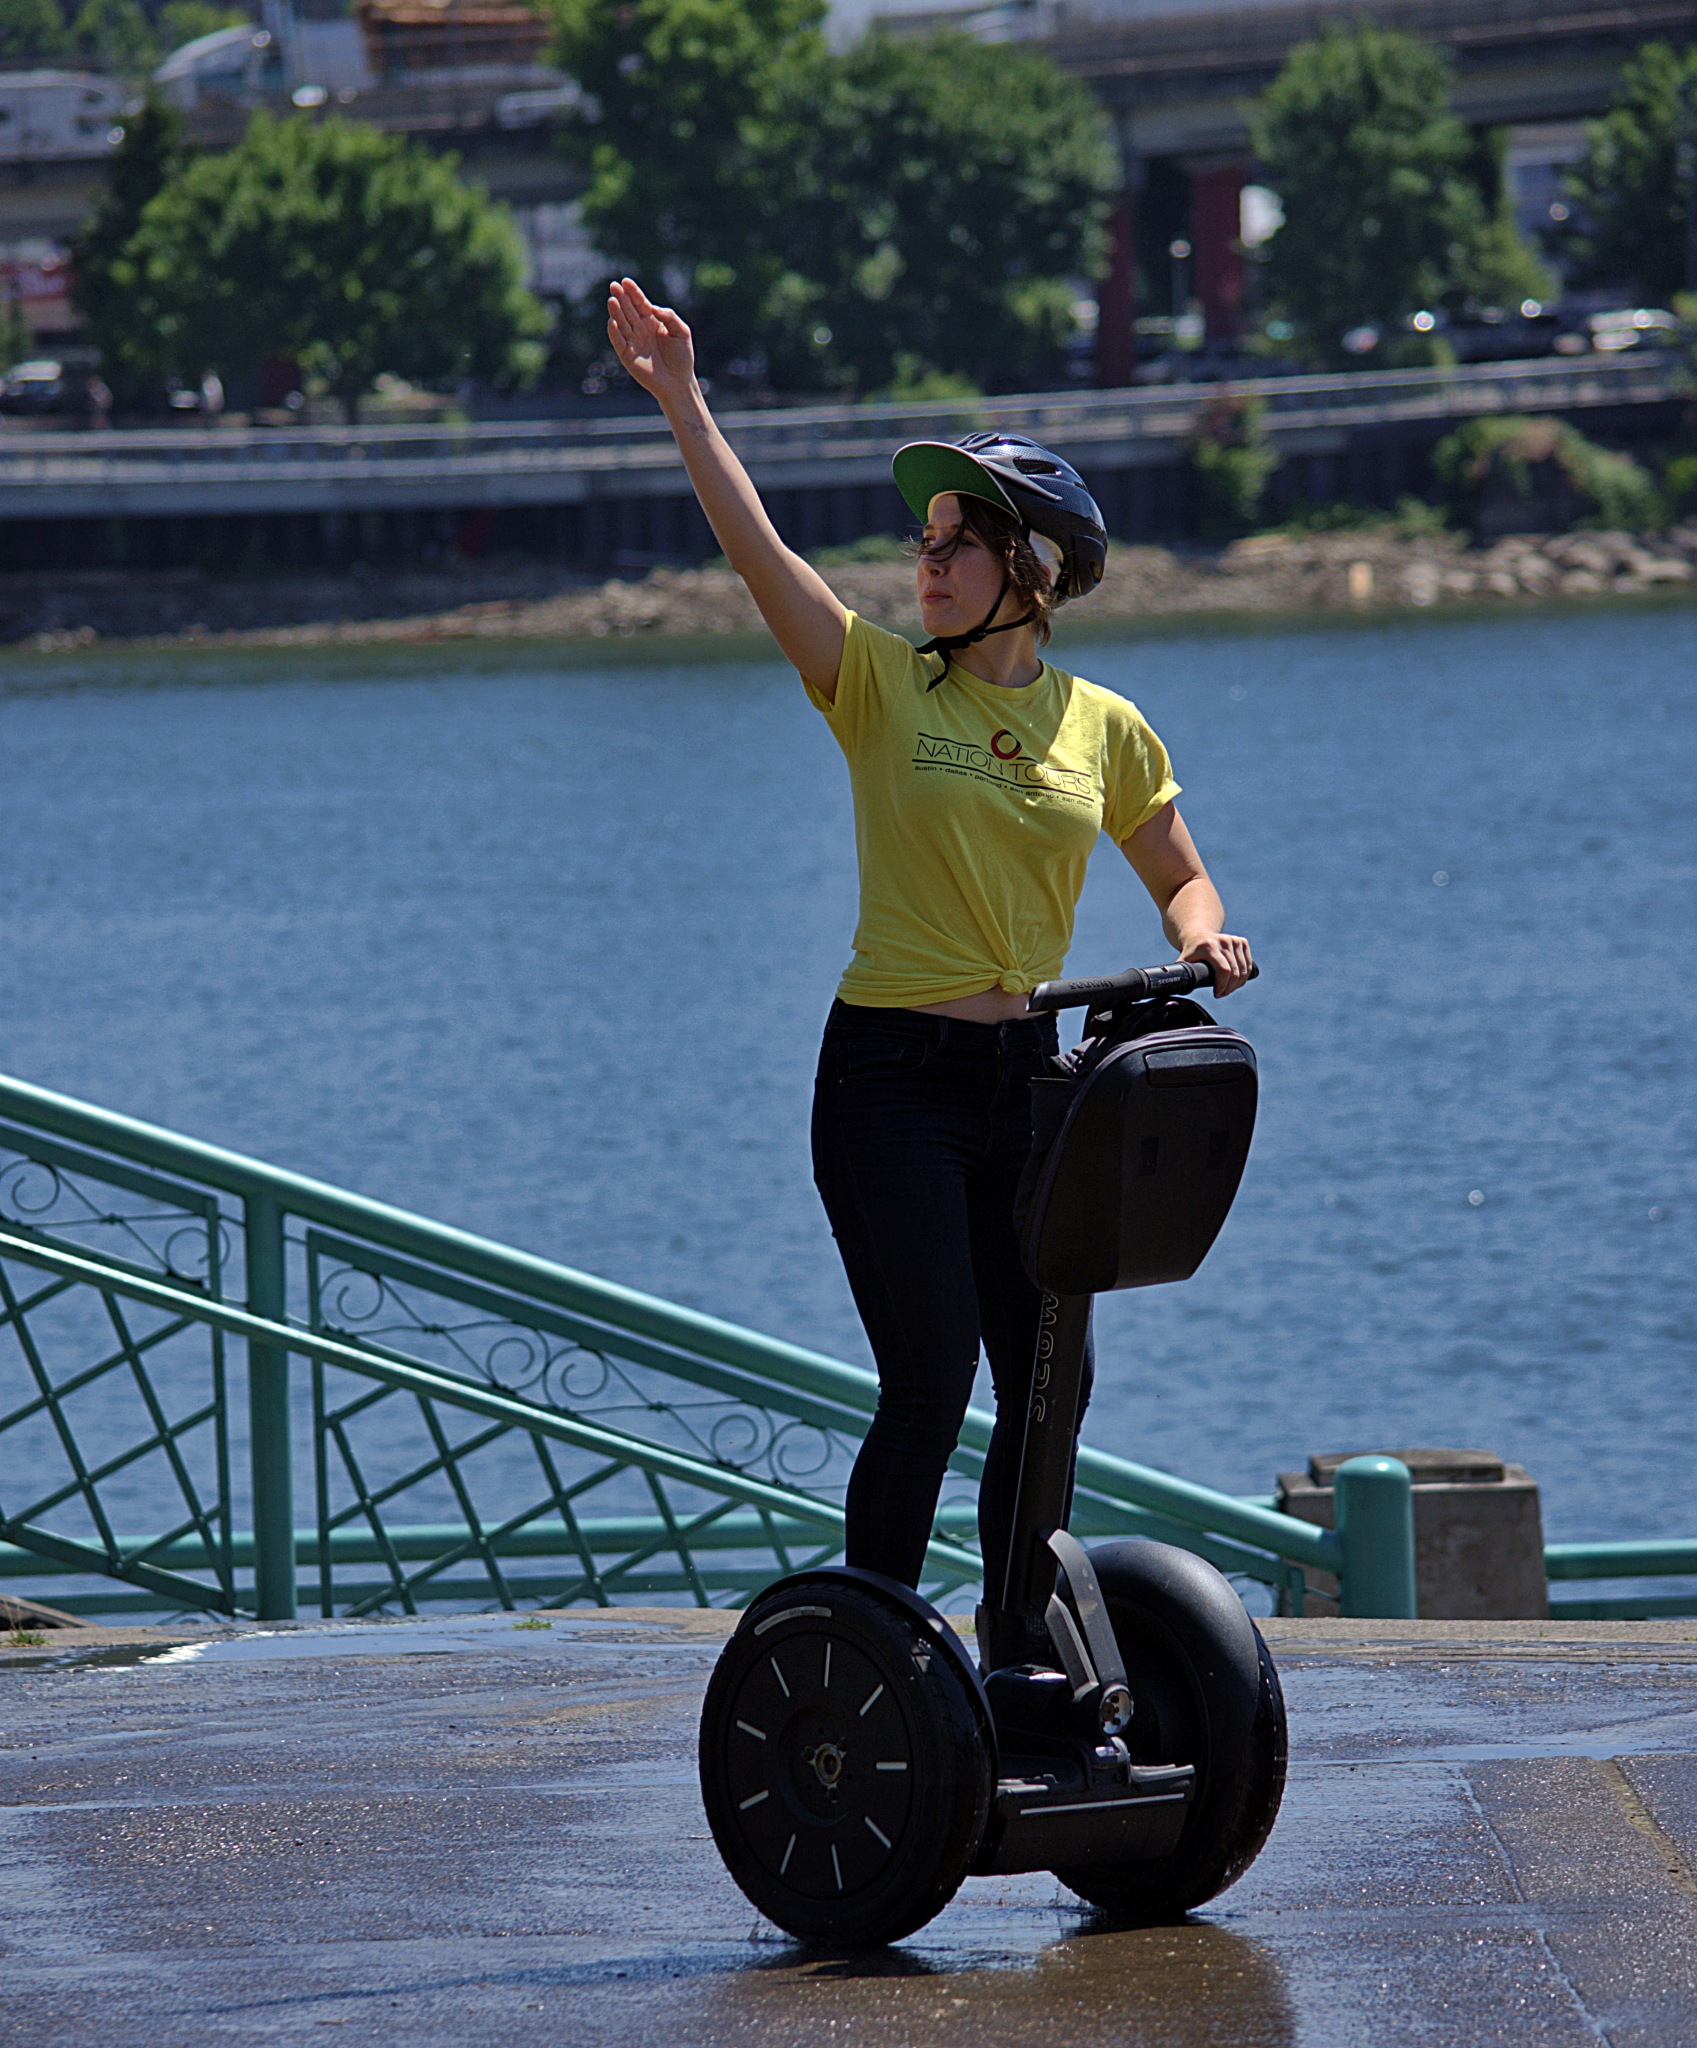 Segway Tour Guide by pscottwong